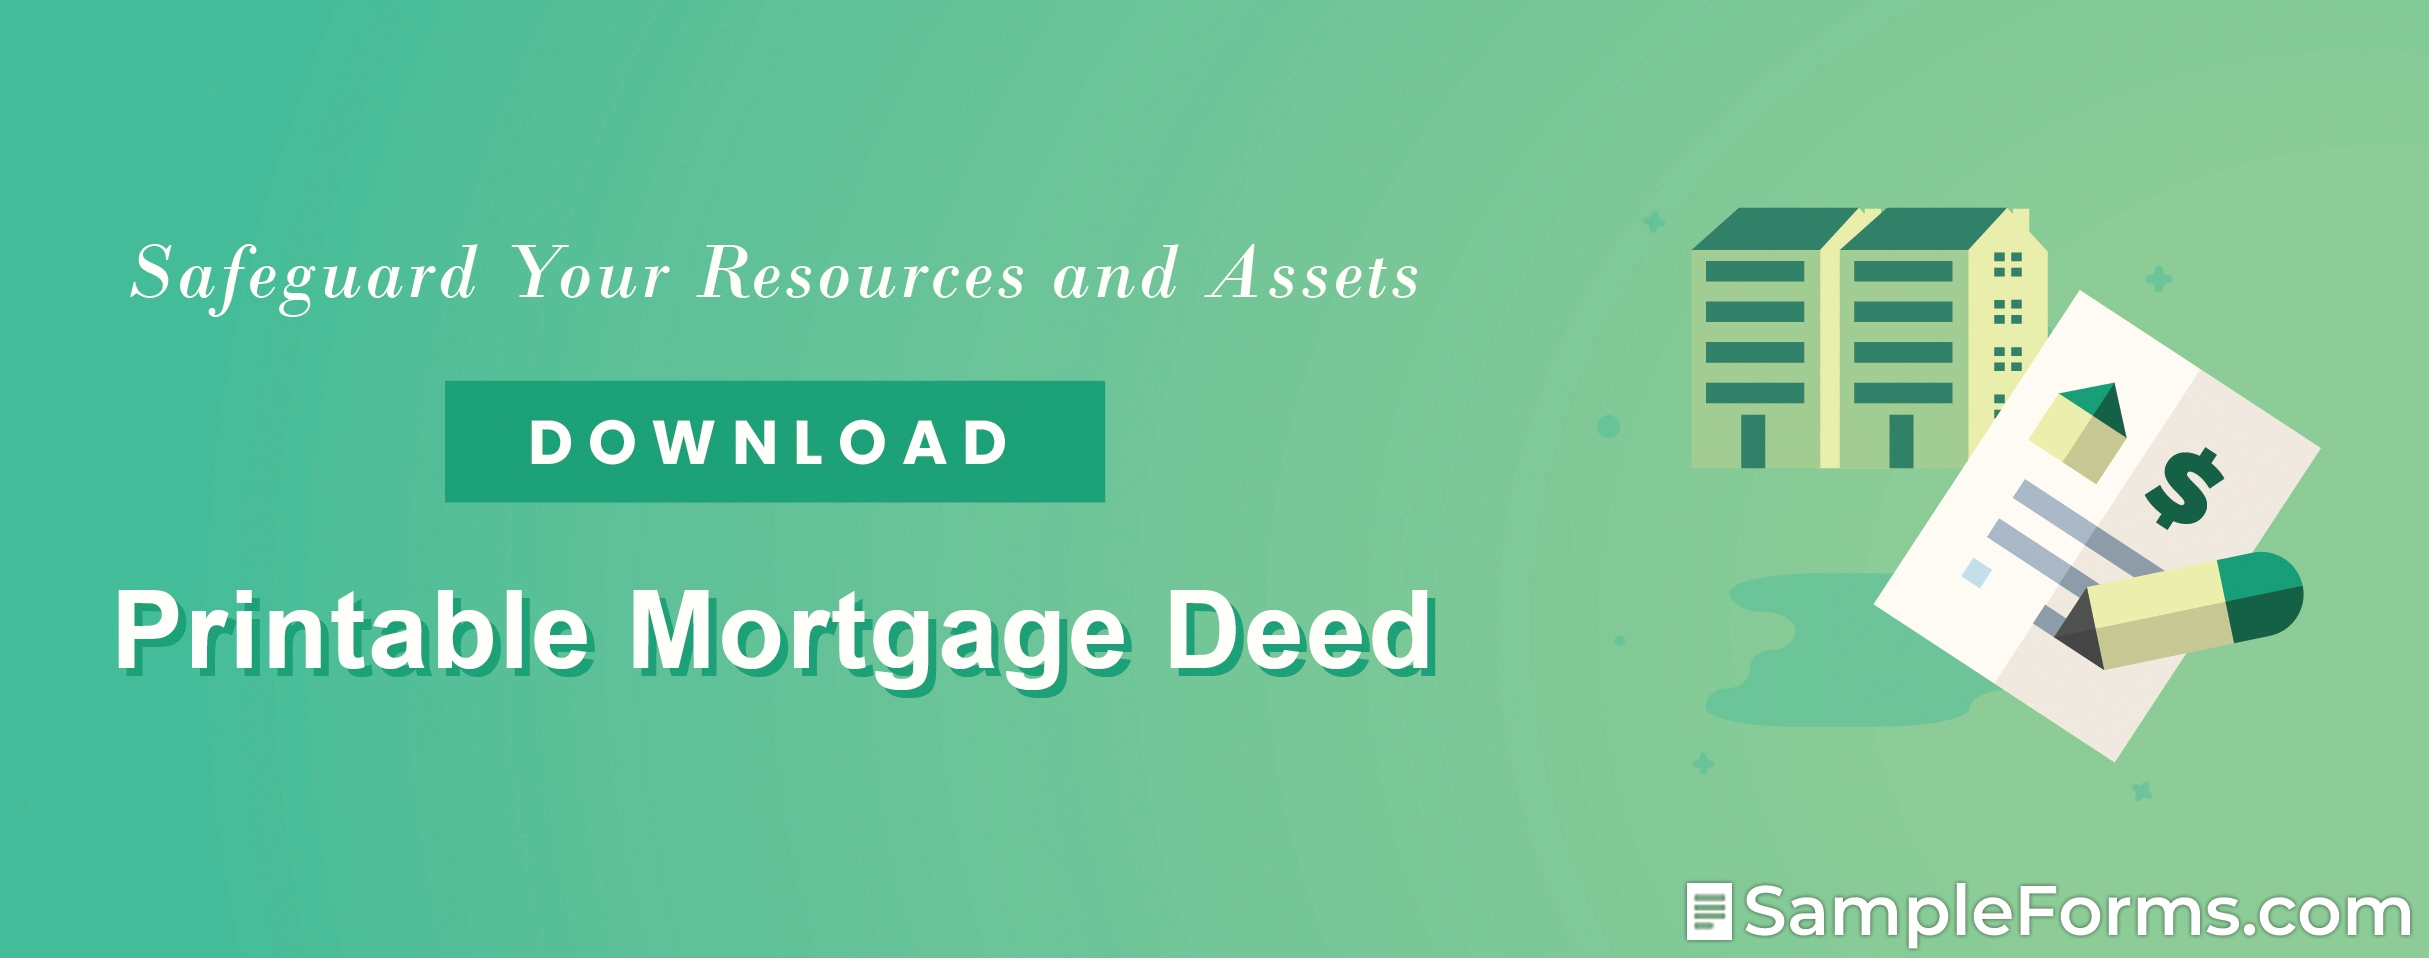 Printable Mortgage Deed